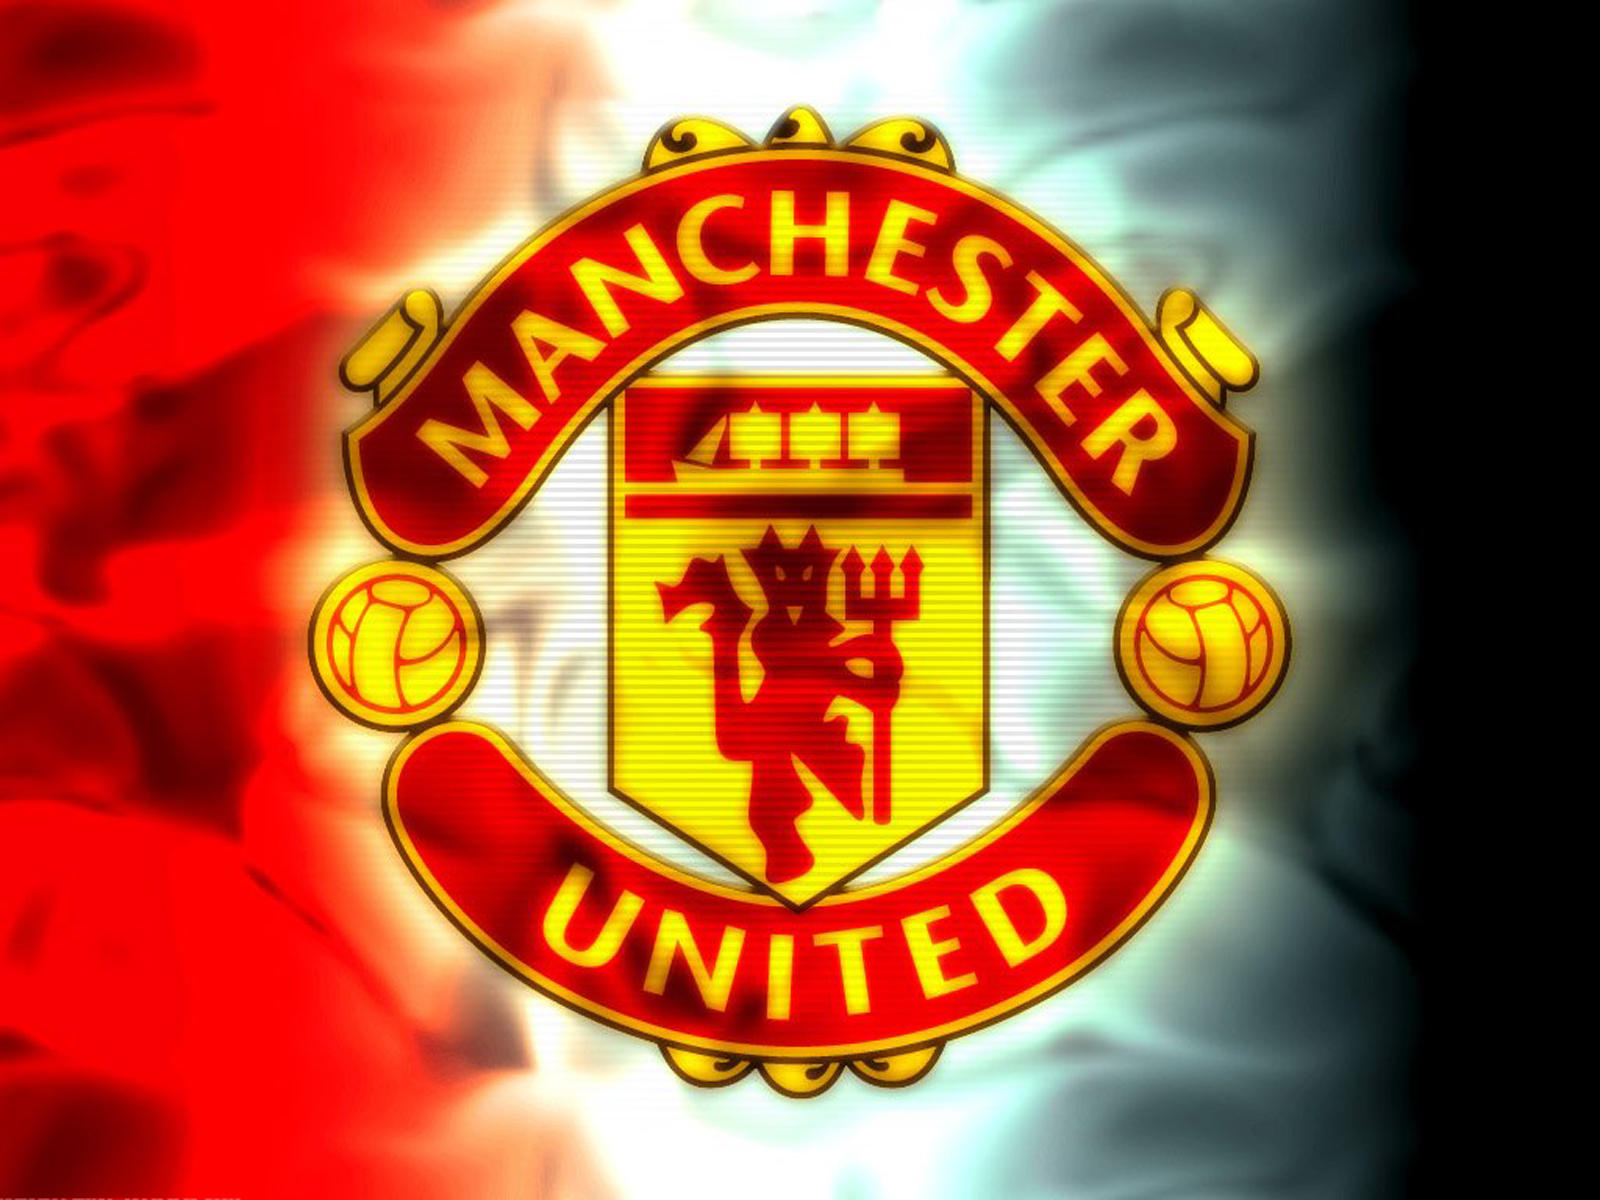 Manchester United Wallpapers Desktop Epic Wallpaperz 1600x1200